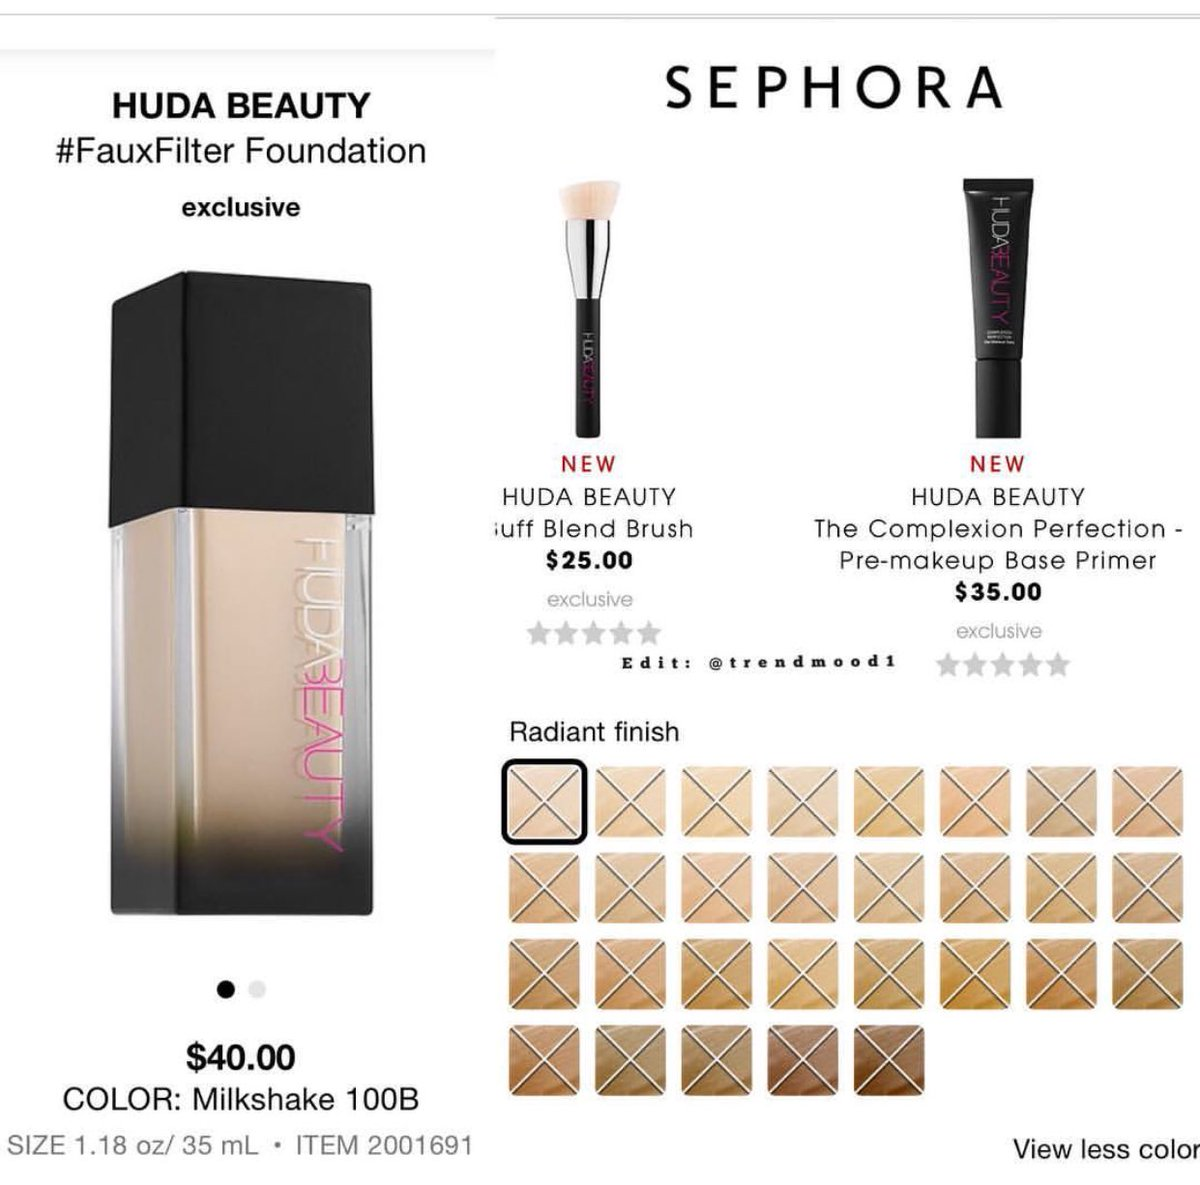 Trendmood On Twitter It S Almost Time Hudabeauty All New 1 The Fauxfilter Foundation 30 Different Shades Love The Names Https T Co Z0t0xdndui